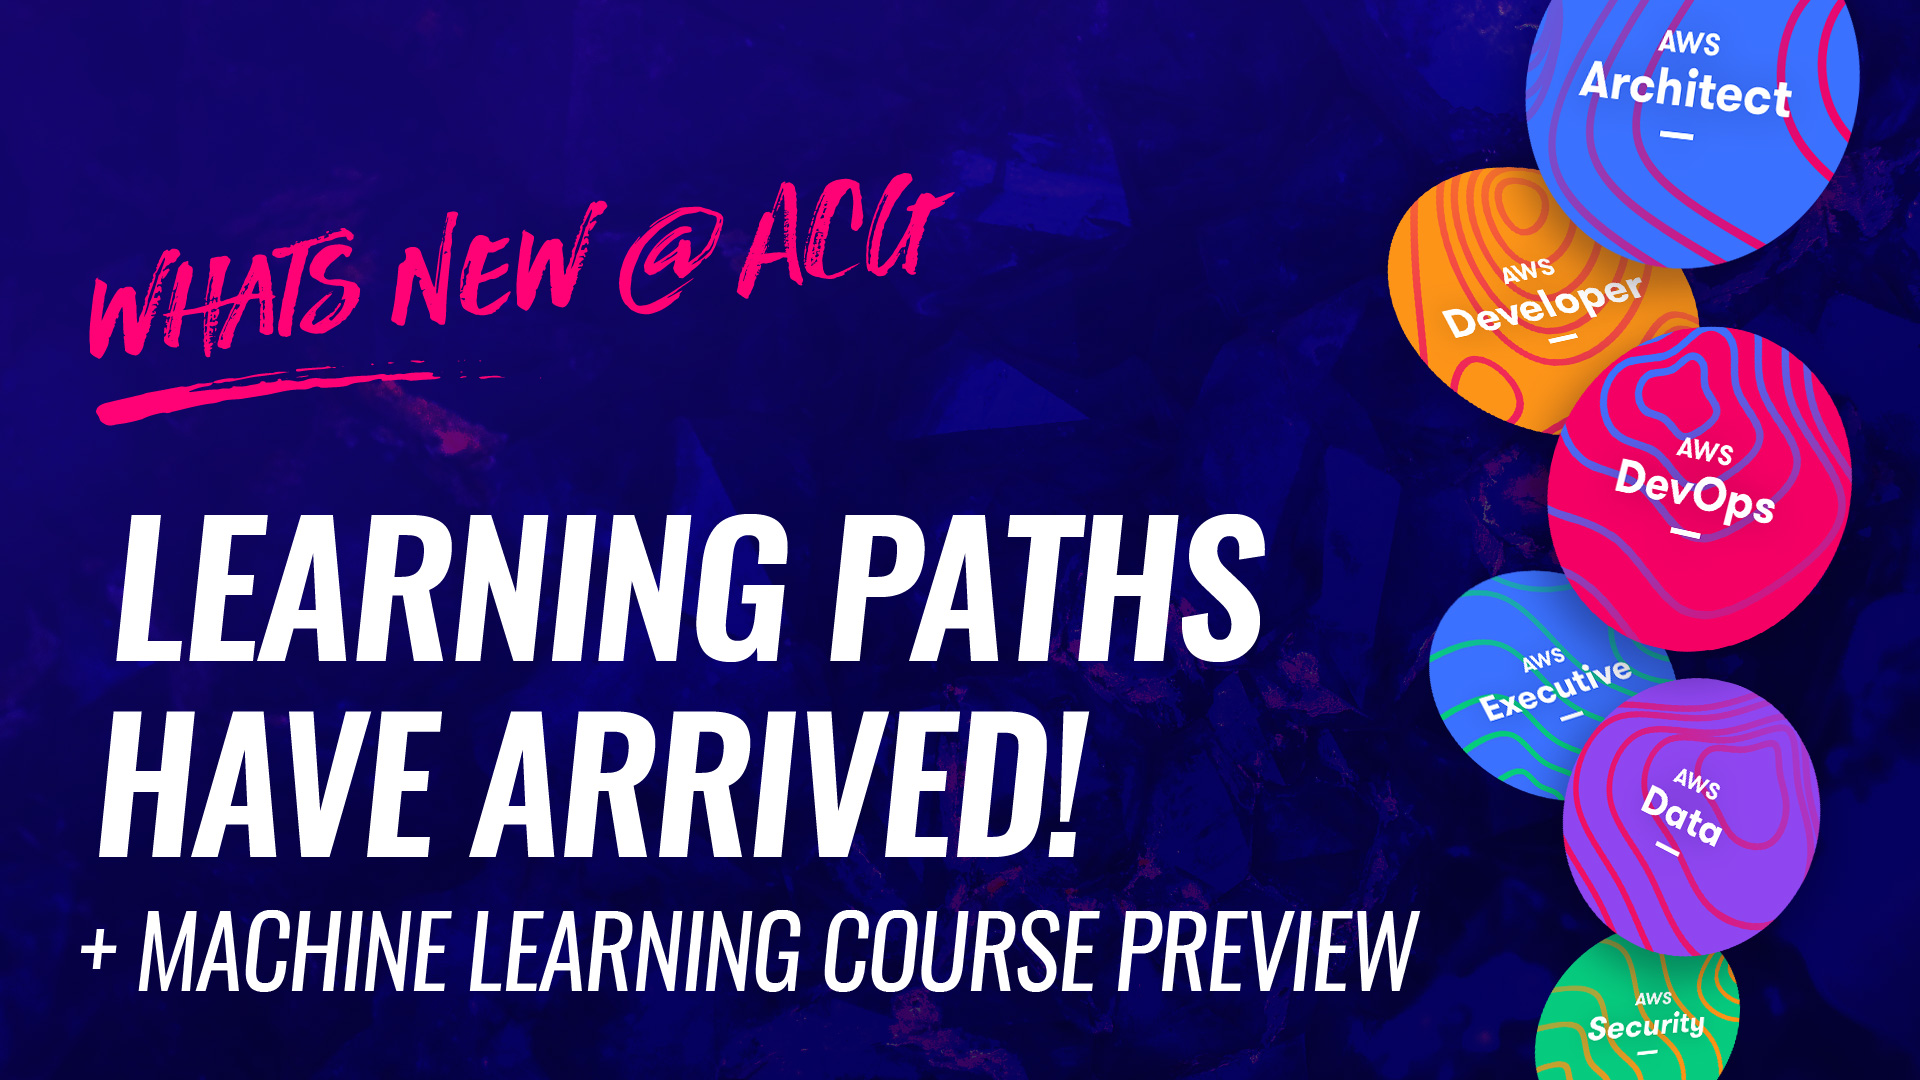 whats new @ acg - learning paths have arrived + machine learning course preview